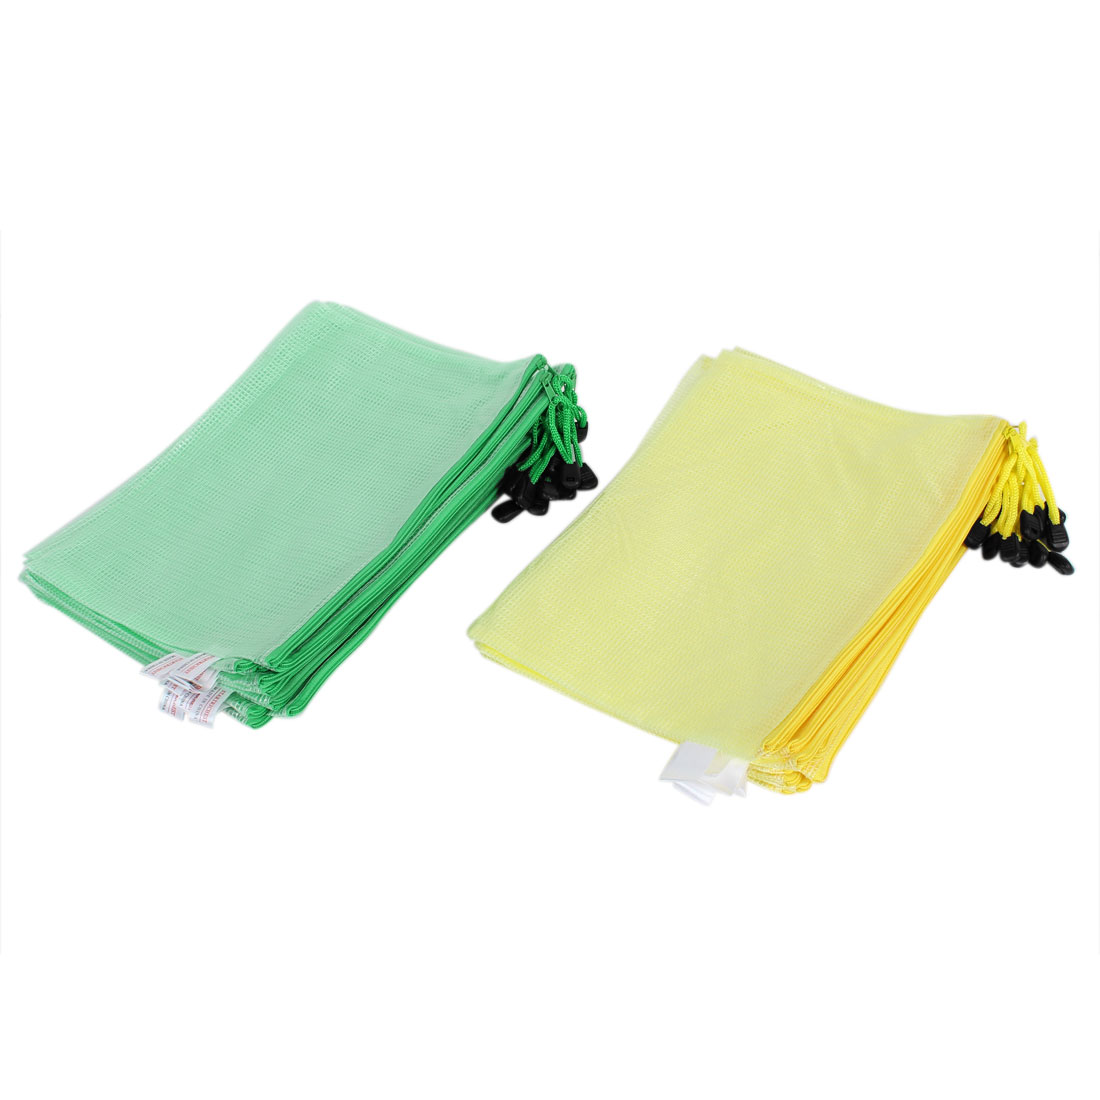 Office School Zipper Closure B5 Paper Document File Bag Holder Organizer Pouch Green Yellow w Strap 24 pcs